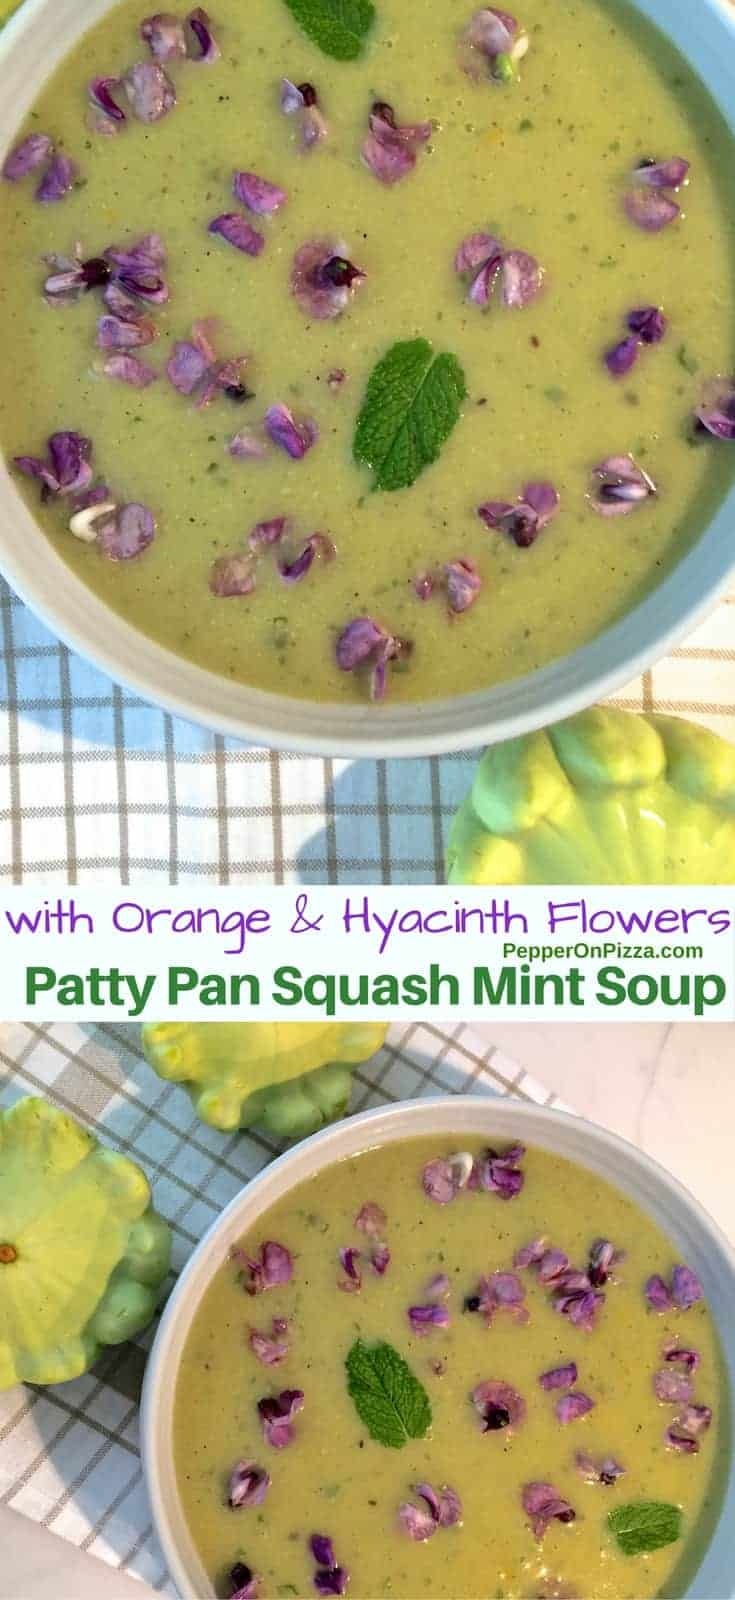 Green Patty Pan Squash Mint Soup with Orange, Hyacinth, Green Capsicum plus a dash of cumin and pepper to spice it up. Delicious, refreshing, easy, healthy